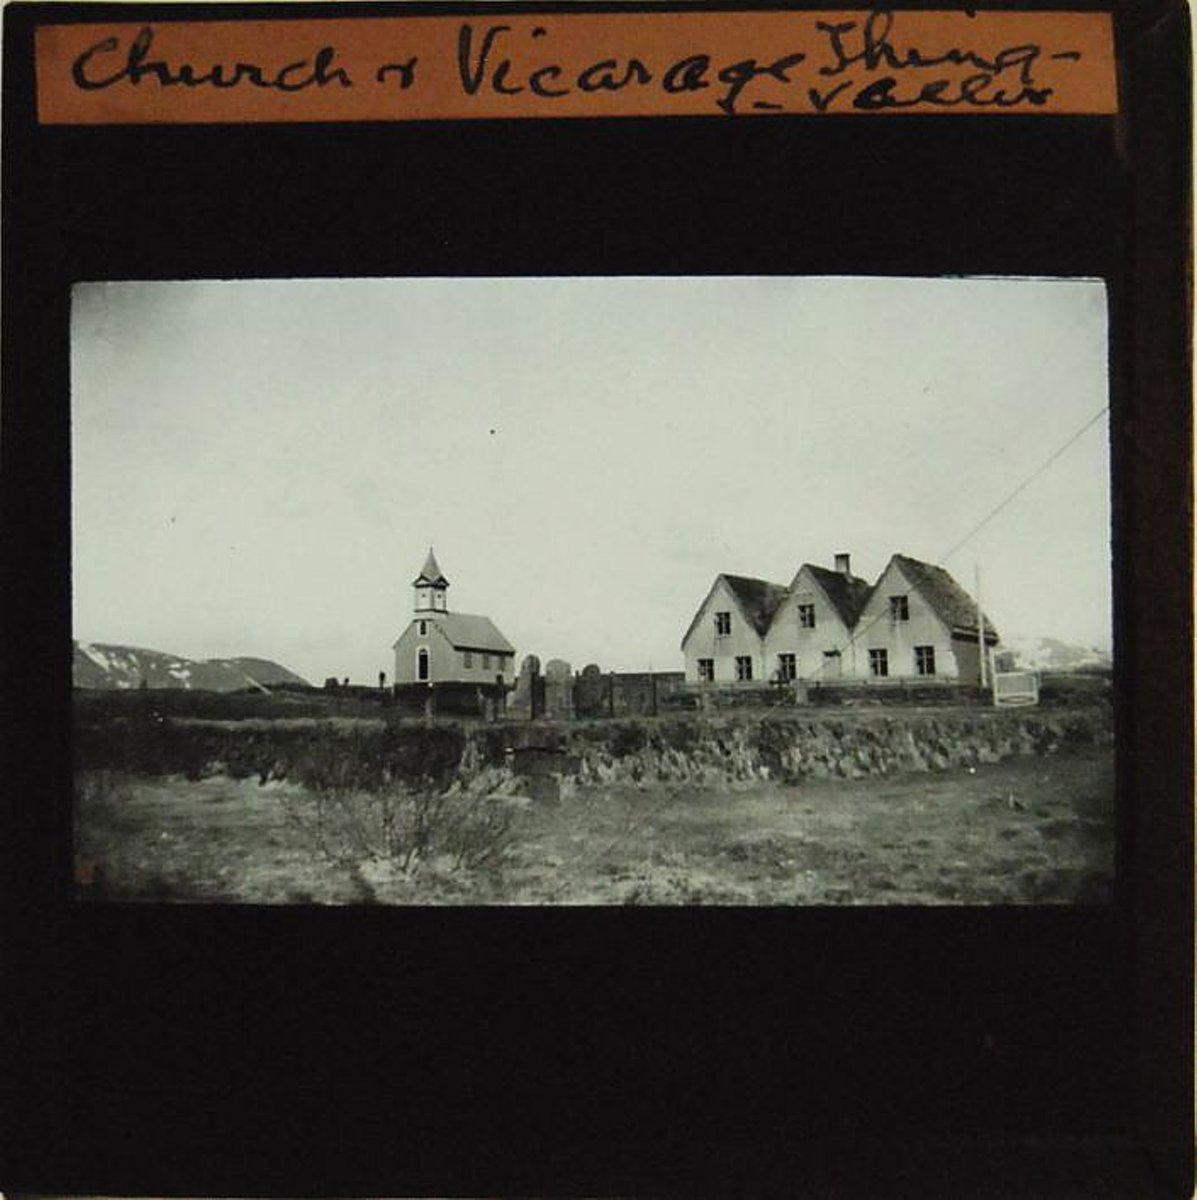 churchvicarage_thingvallir.jpg